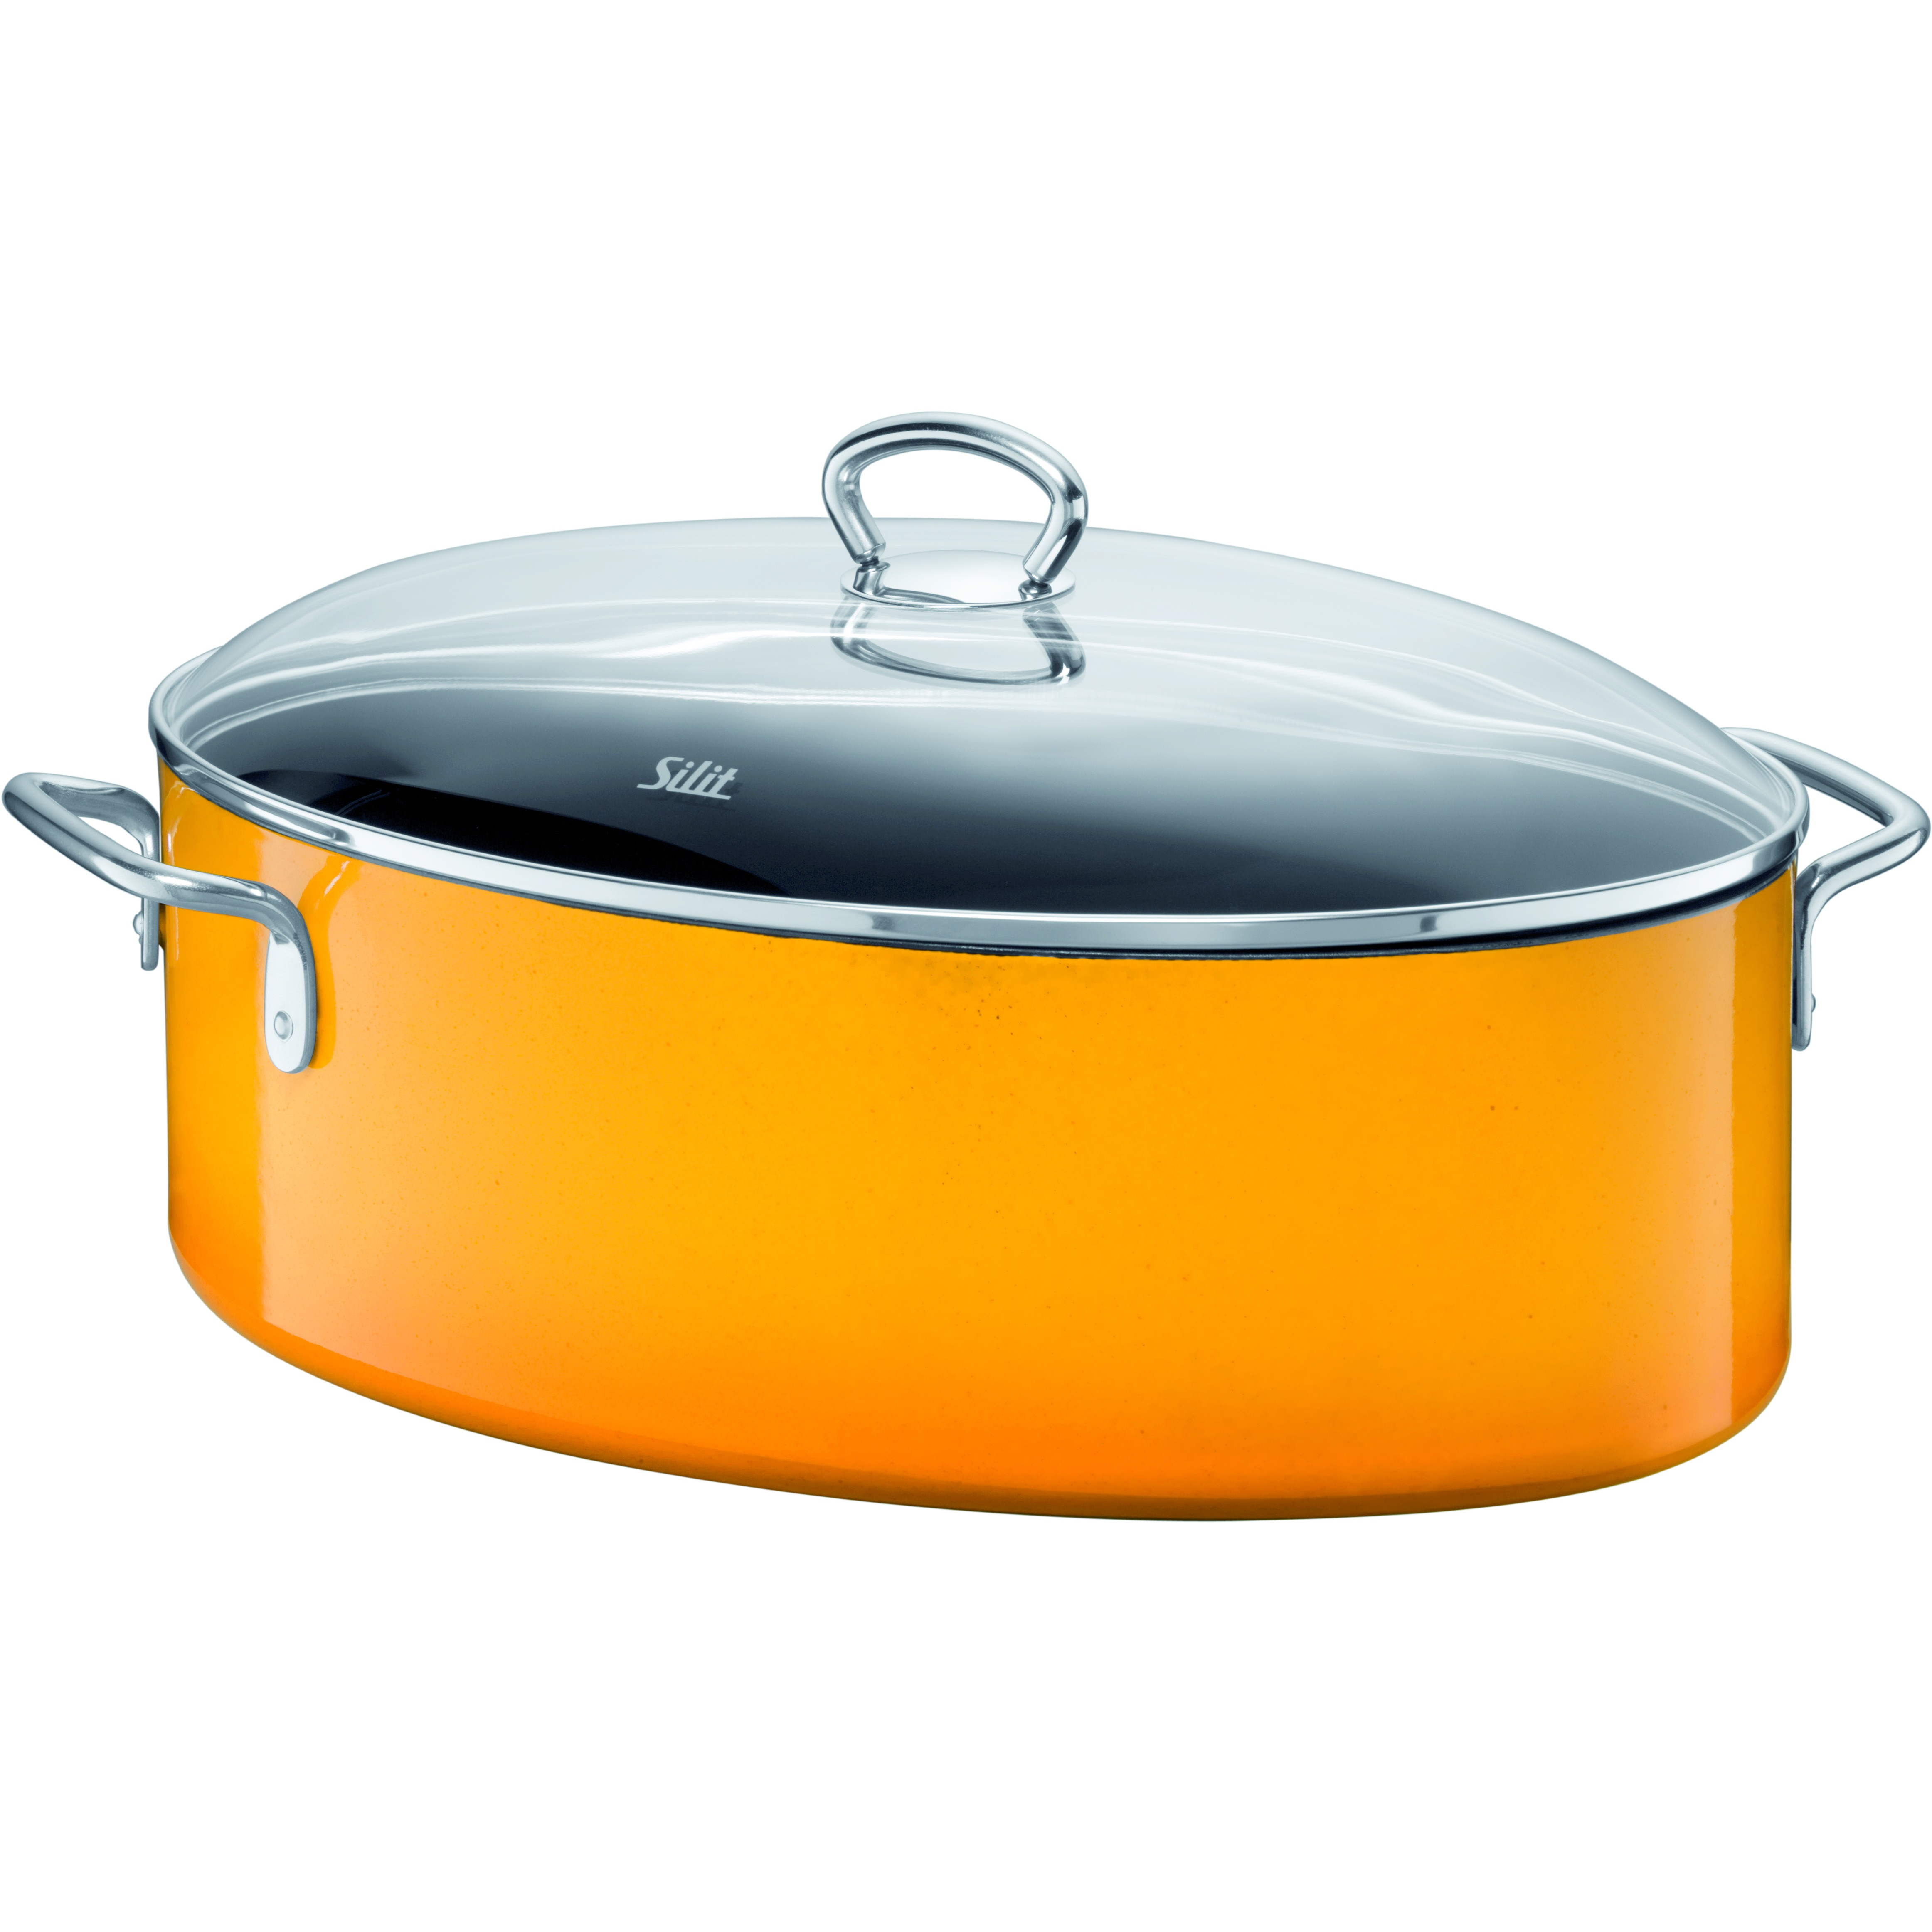 WMF Passion Colors Crazy Yellow Oval Roasting Pan with Lid, 8.5 Quart